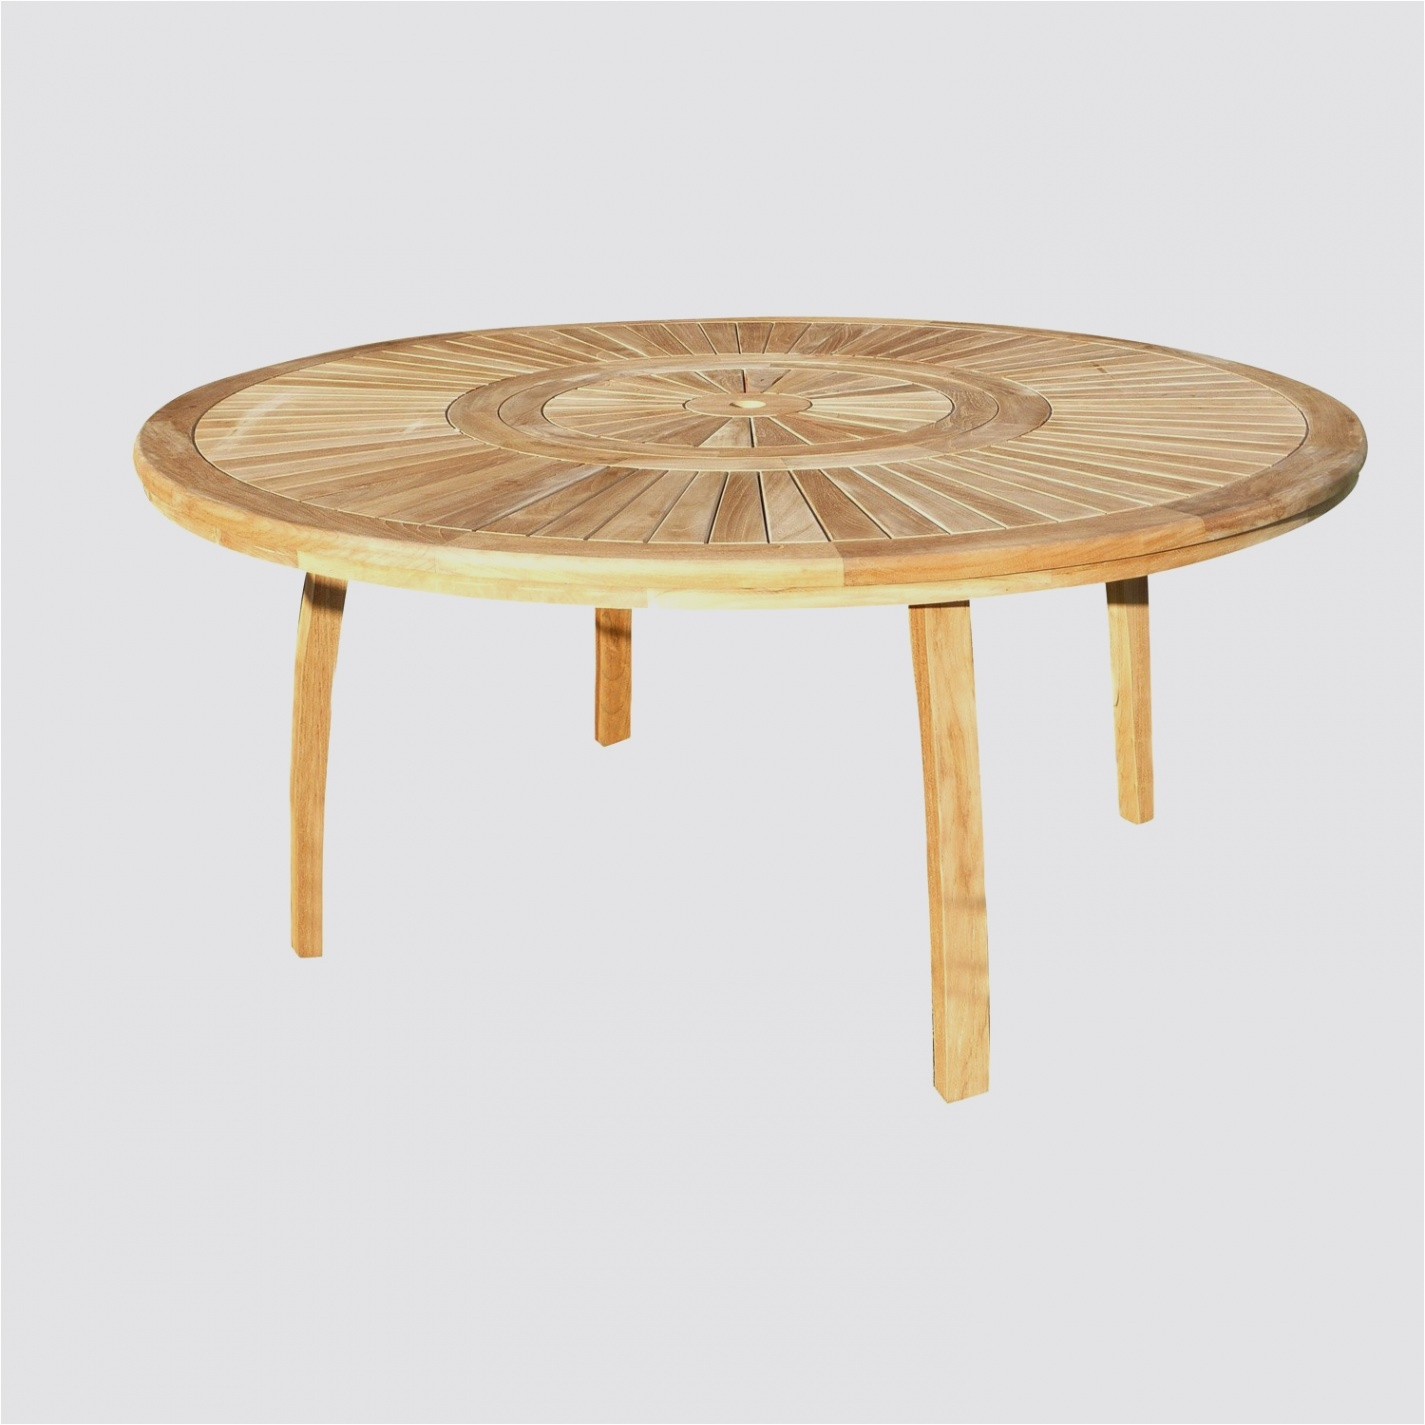 Table Ronde Bois Blanc Admiré Table Ronde Bois Pied Central Table Ronde Bois Blanc